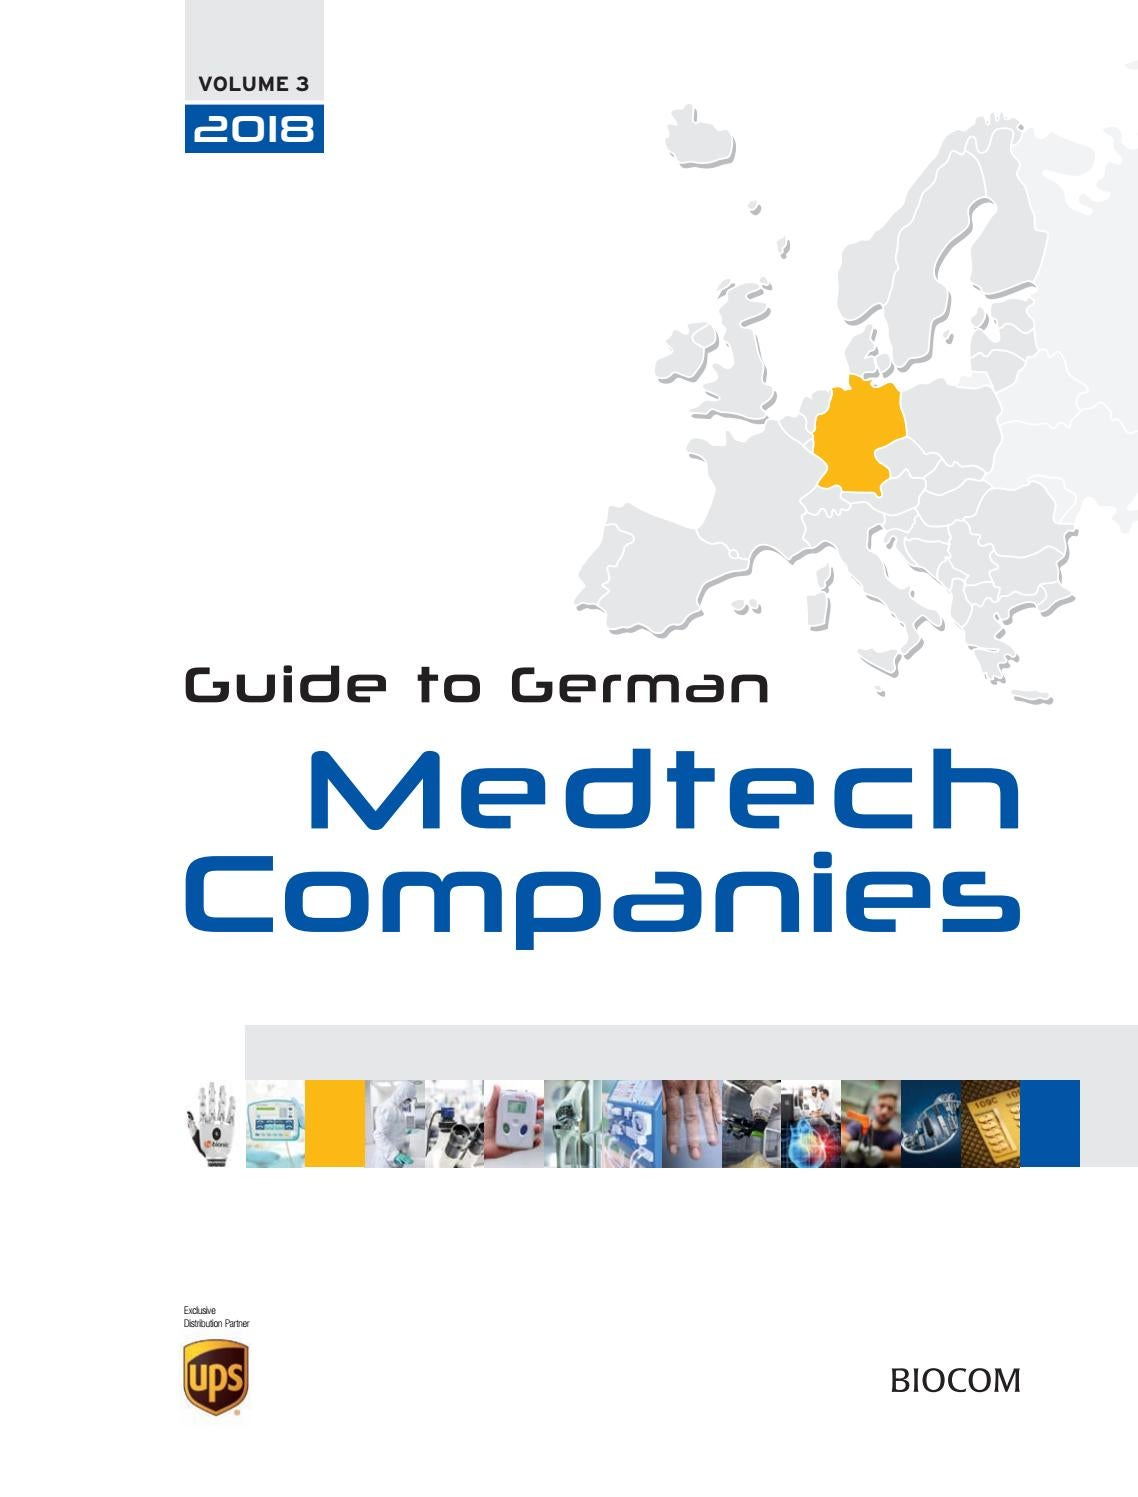 Roberto Albrecht Innendesign Eitorf Medtech Guide 2018 By Biocom Ag Issuu